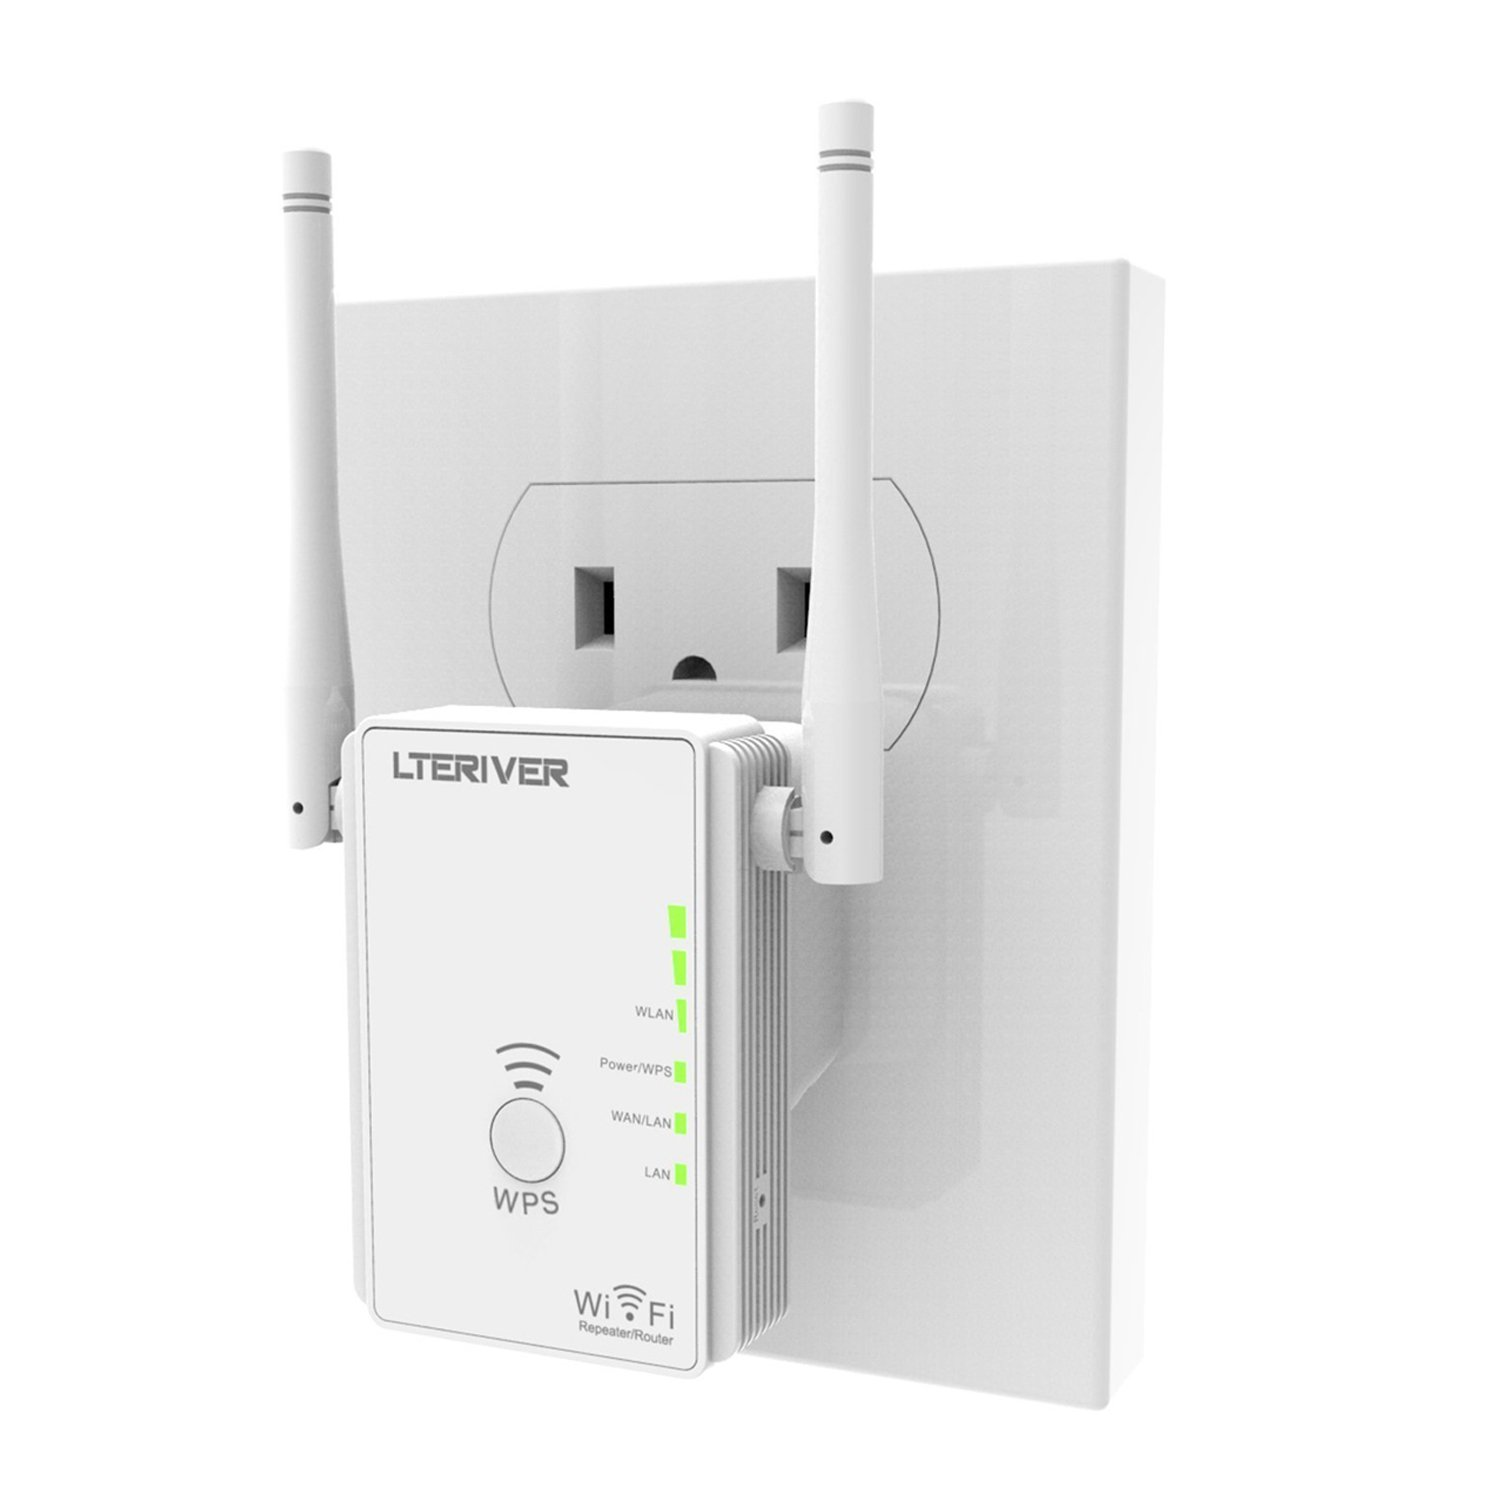 LTERIVER 802.11N 300Mbps WiFi Repeater WiFi Range Extender WiFi Signal Booster Mini Router Wireless Access Point With Two External WiFi Antenna &Power Management(E300)